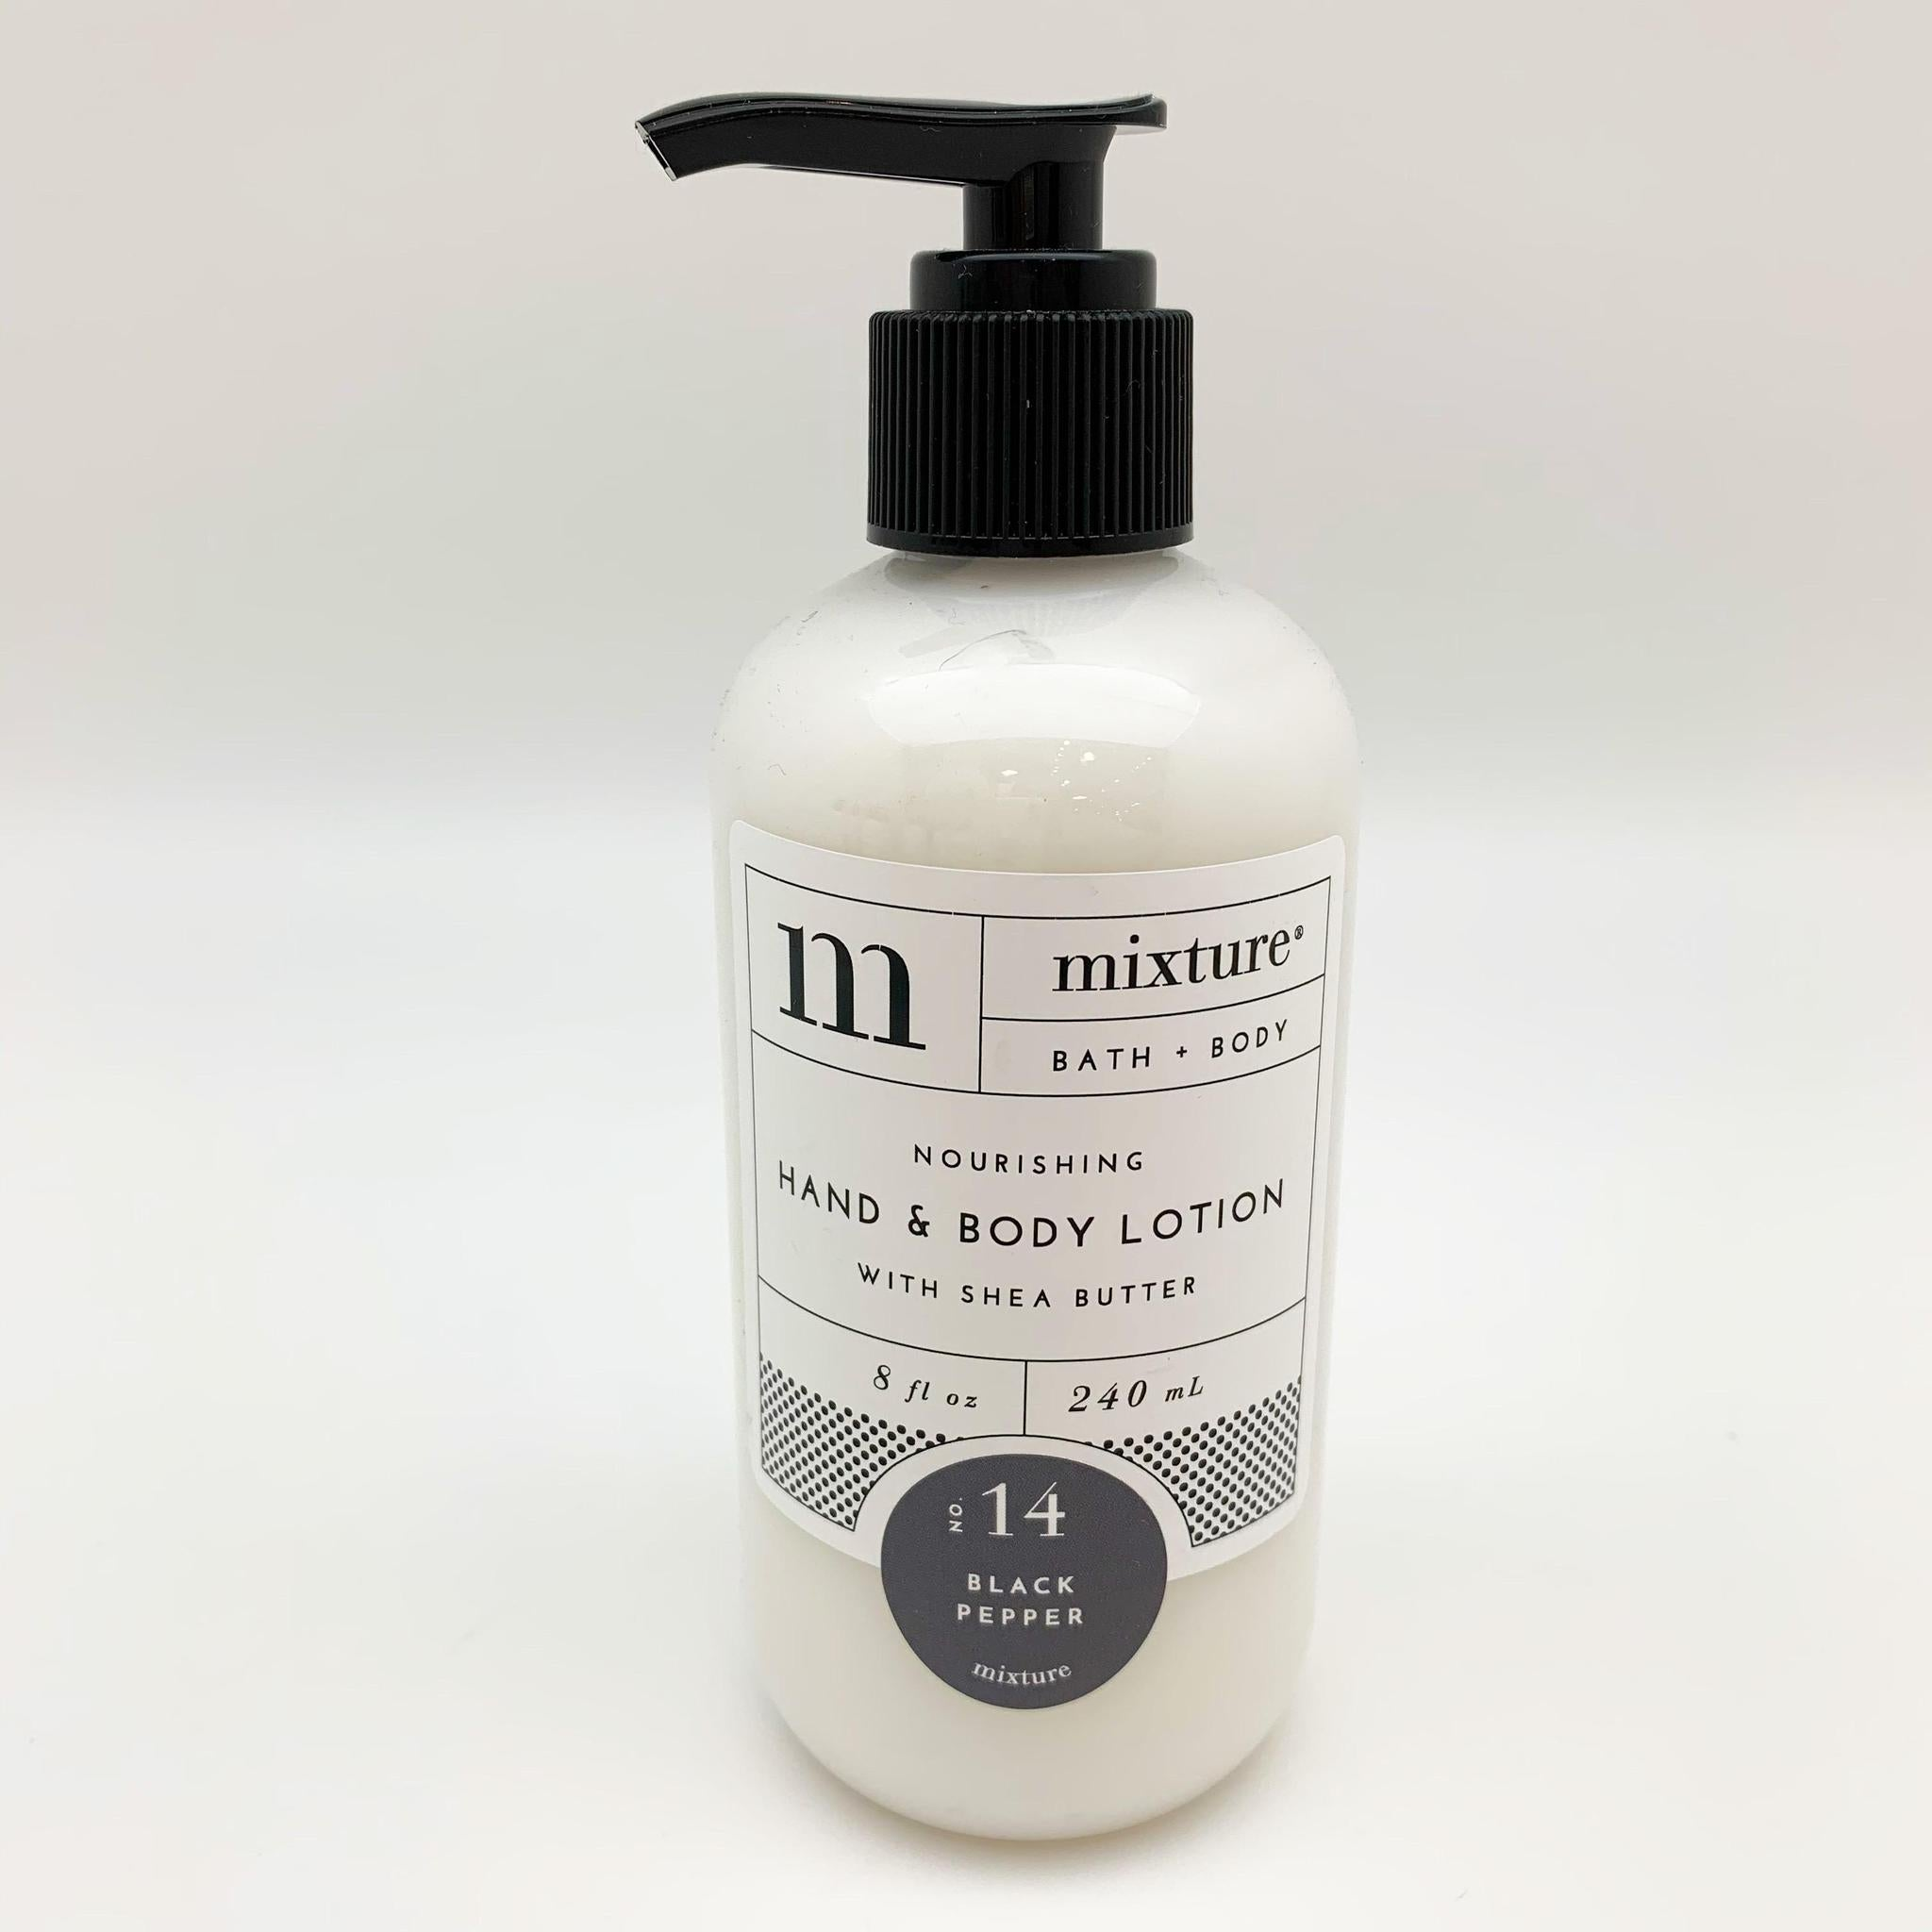 Hand Lotion - Black Pepper - 8 oz with Pump